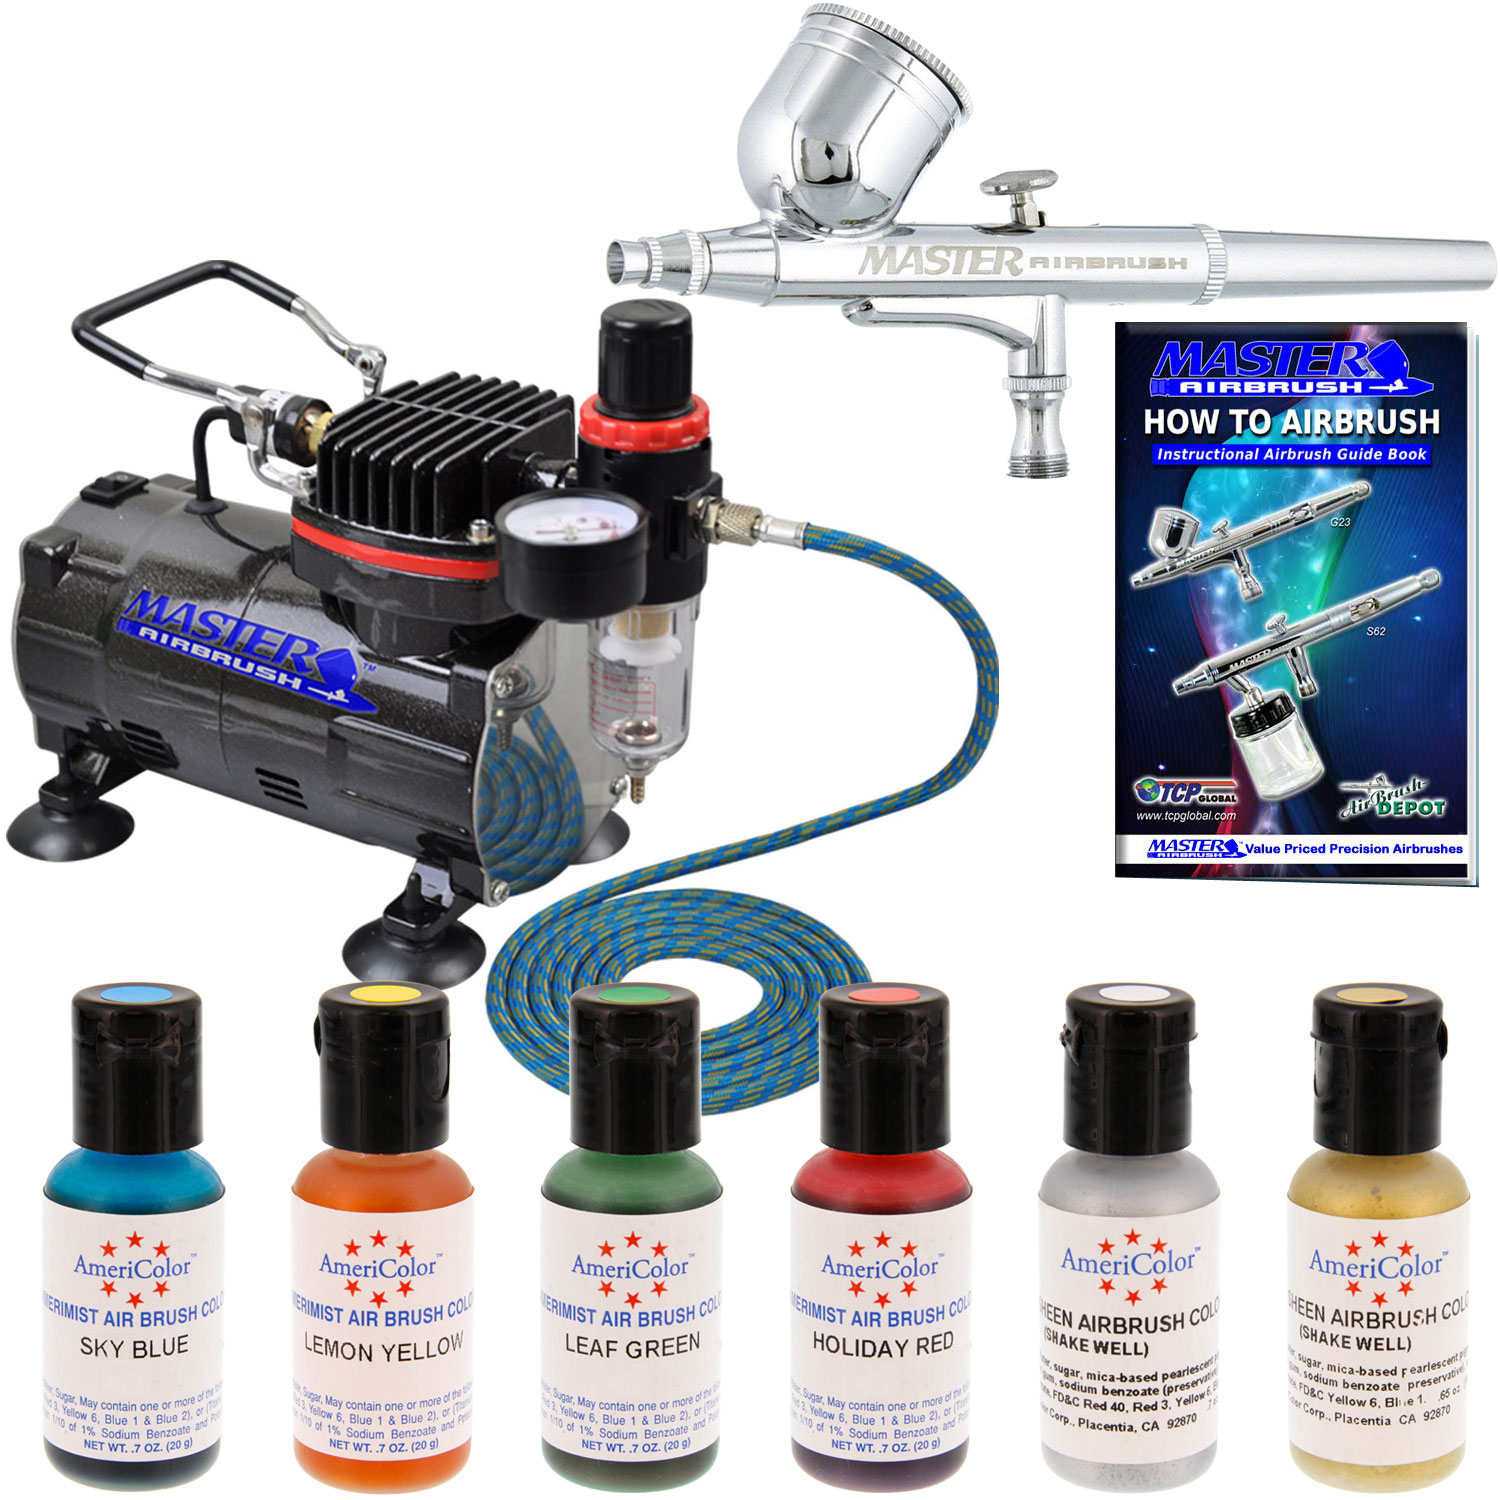 Airbrush For Cake Decorating : Bakery crafts airbrush compressor